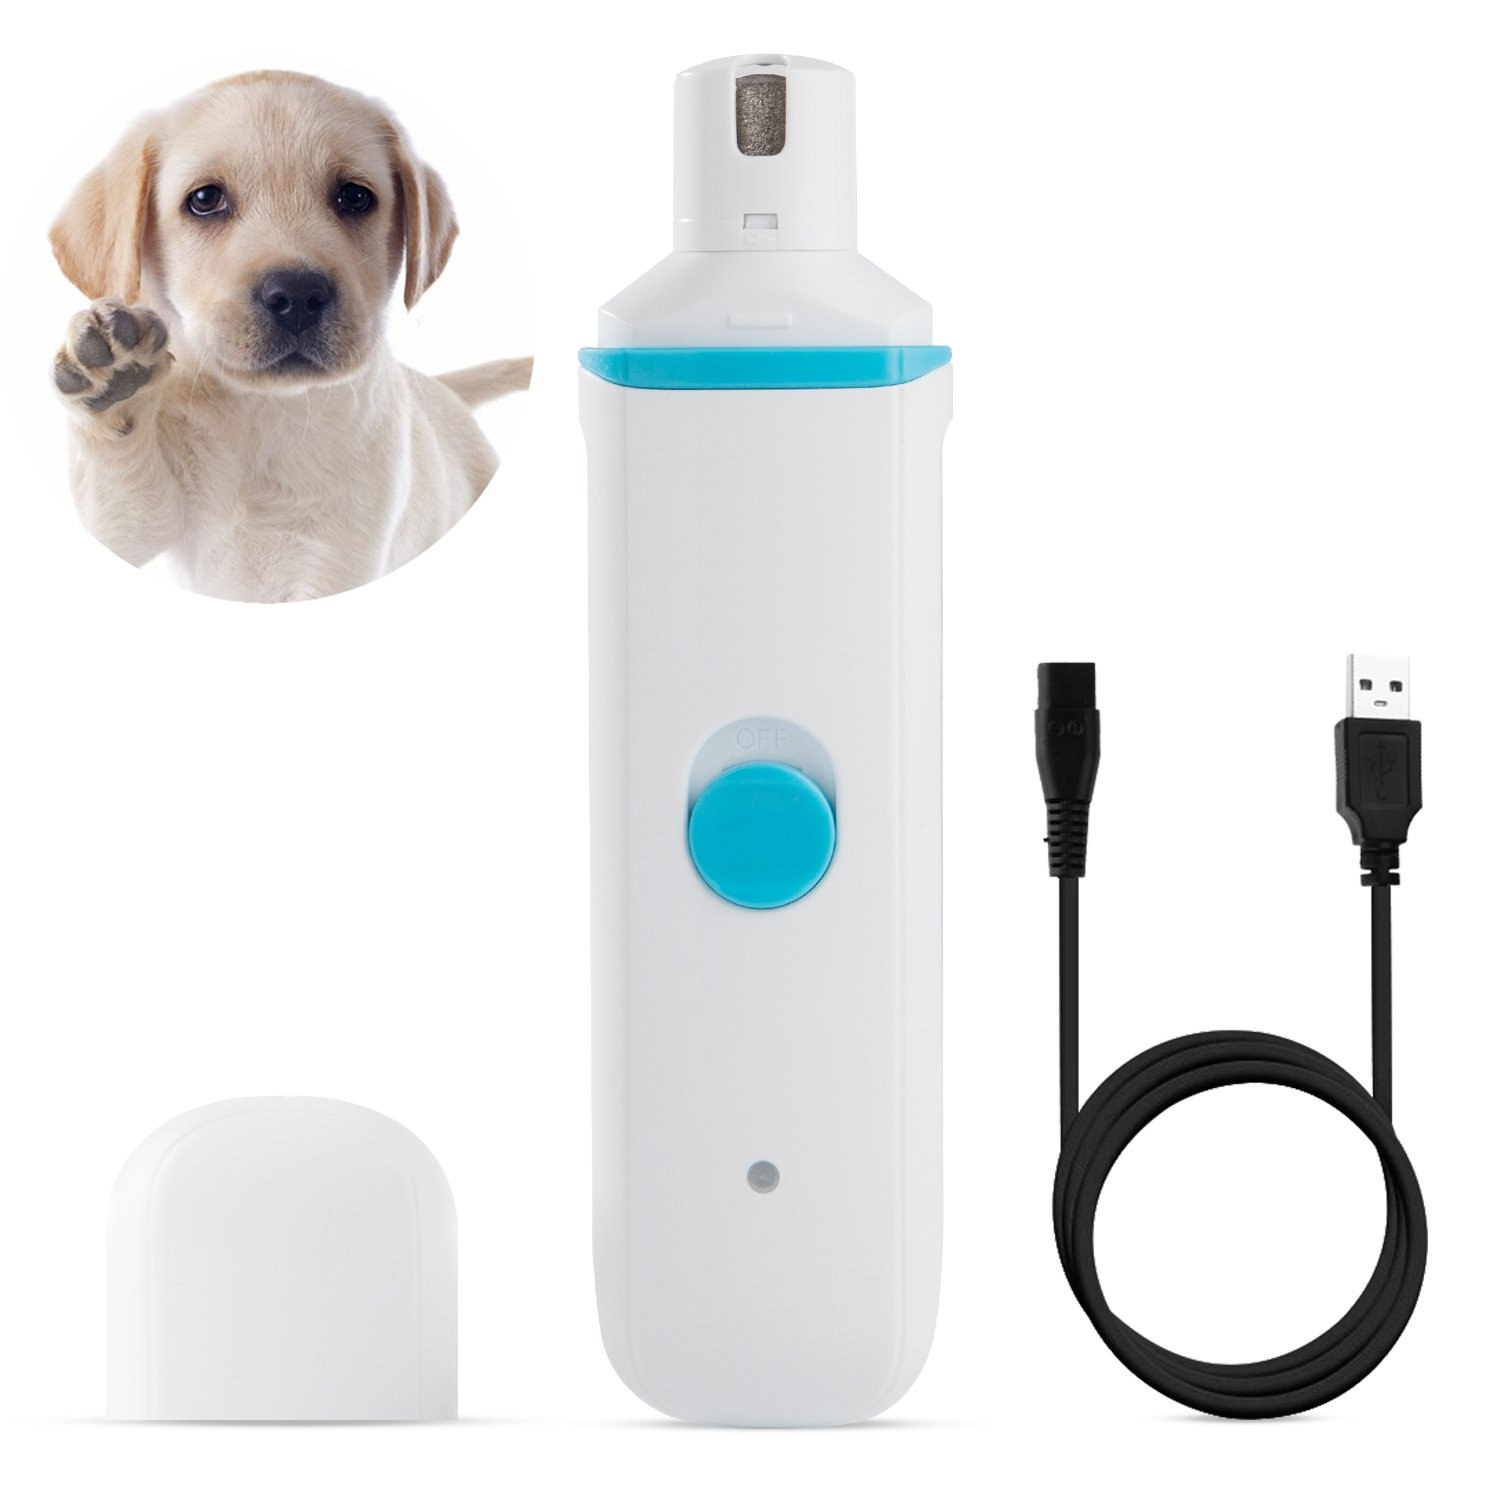 Electric Pet Nail Grinder for Dogs Cats Birds, Nail Trimming Grooming and Shaping, Low Noise with USB Wire Rechargeable and Portable